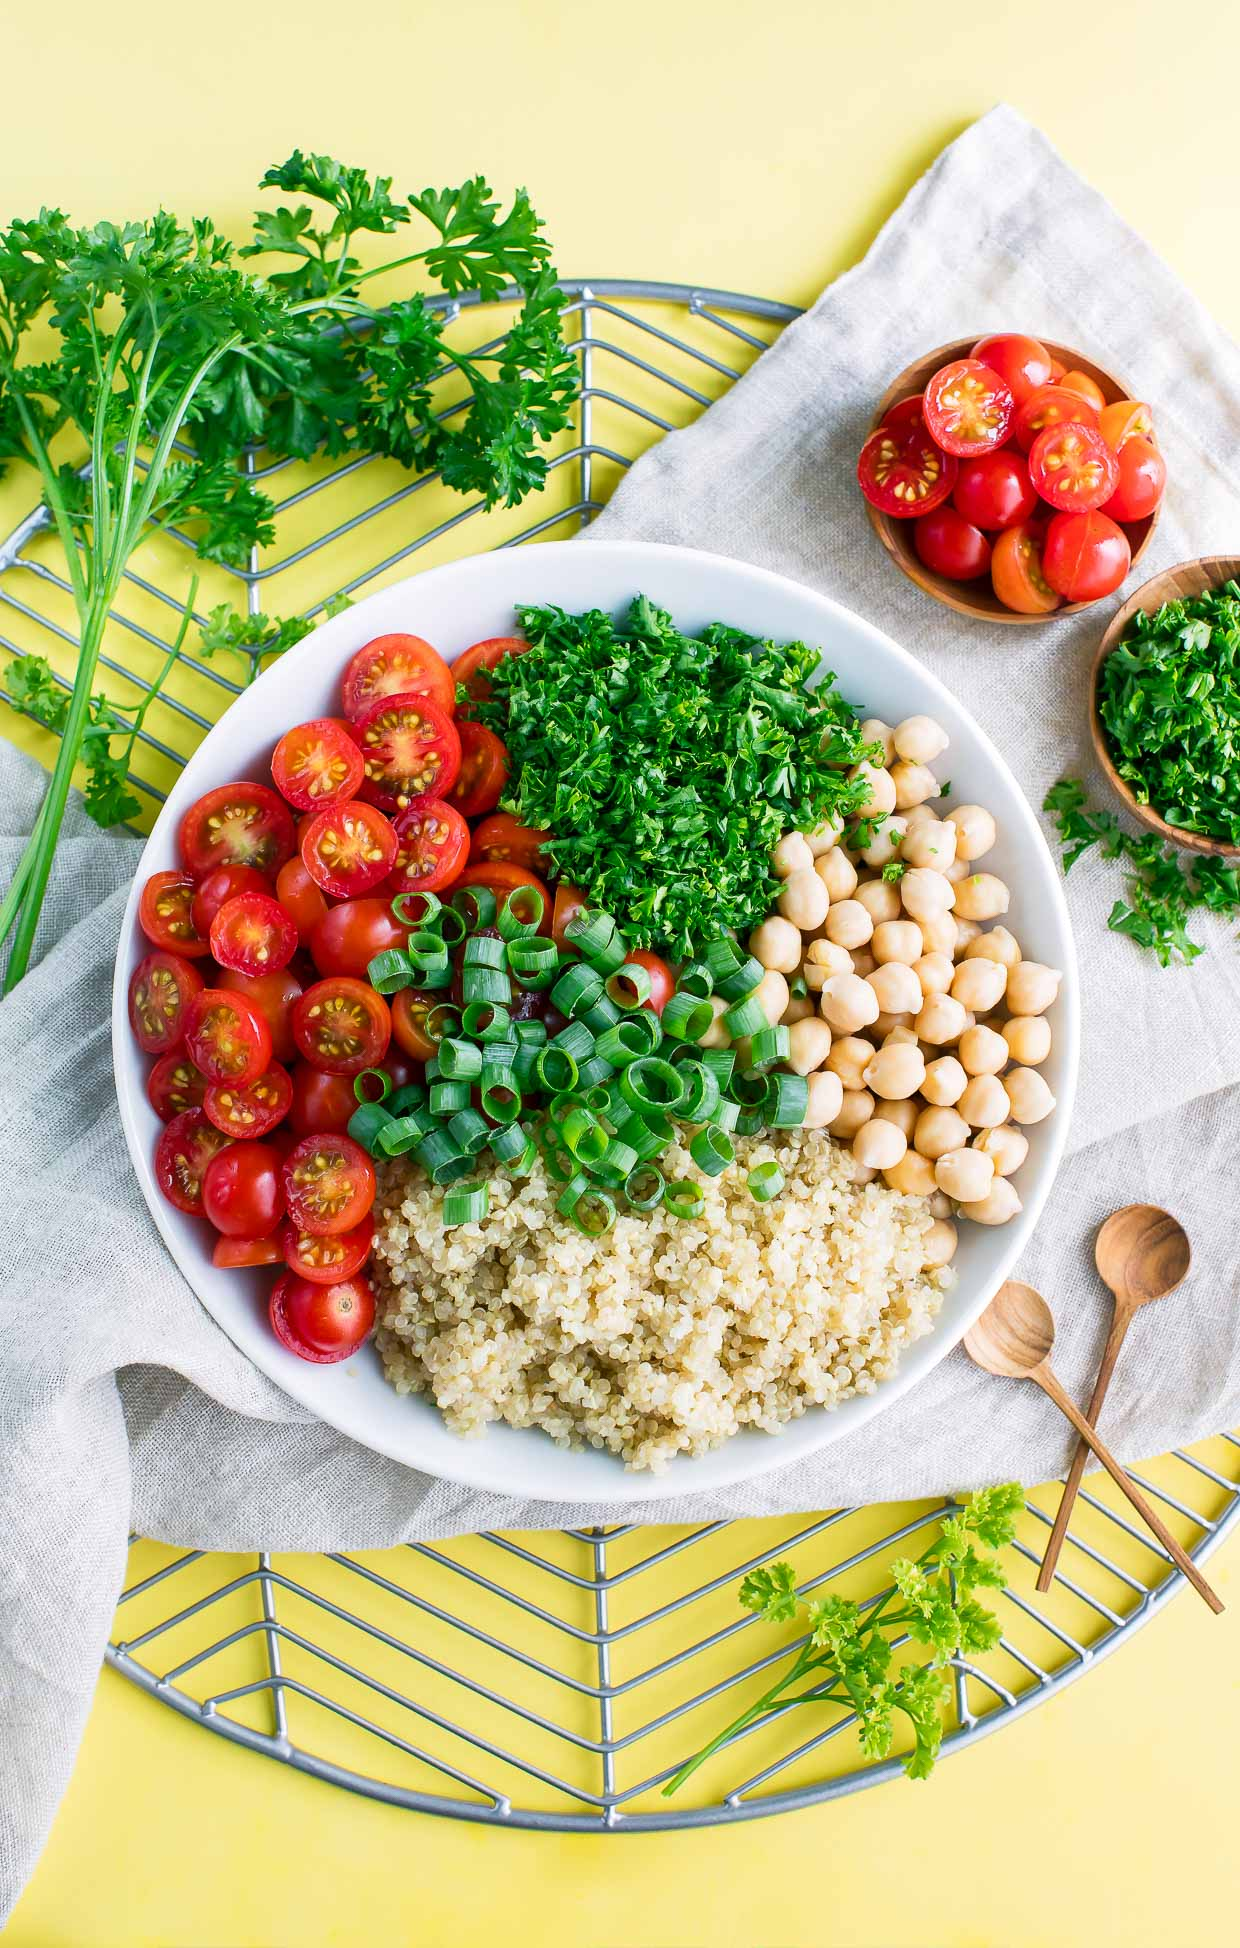 Tomato Quinoa Salad Ingredients